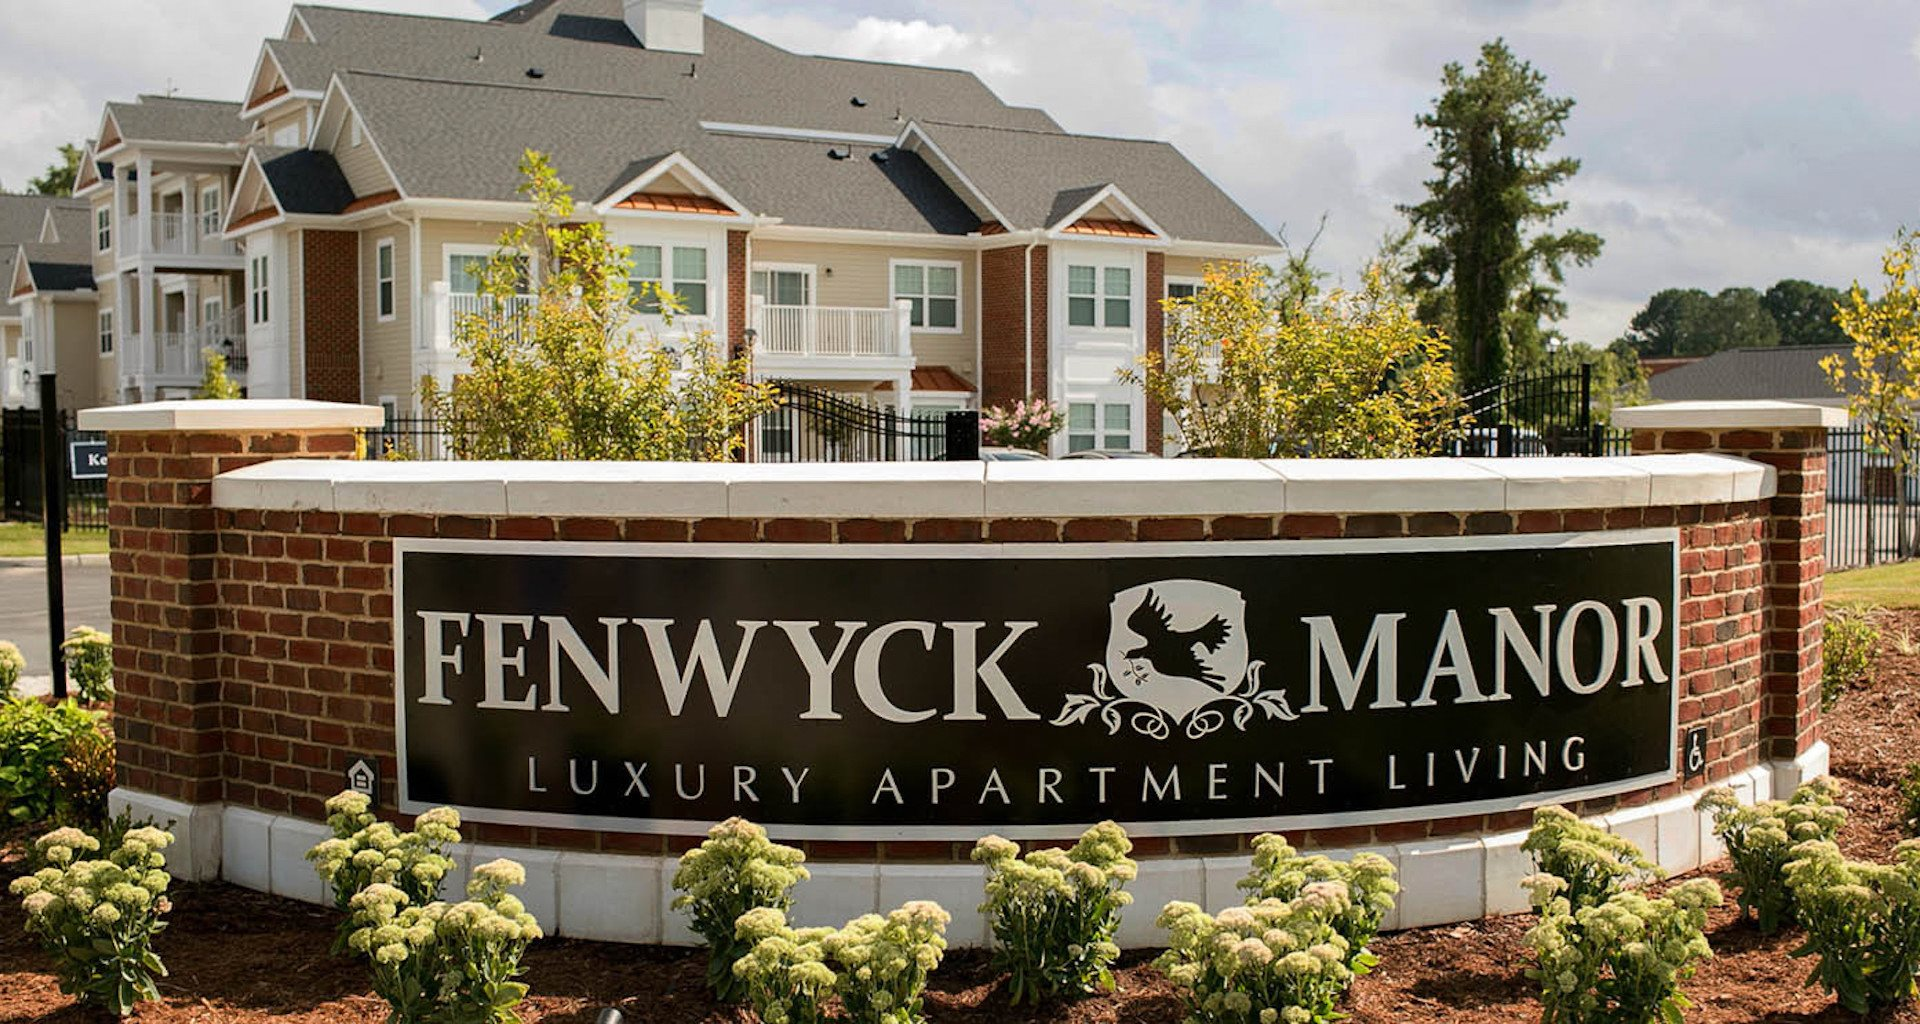 Fenwyck Manor Apartments Chesapeake, VA 23320 sign entrance to the community